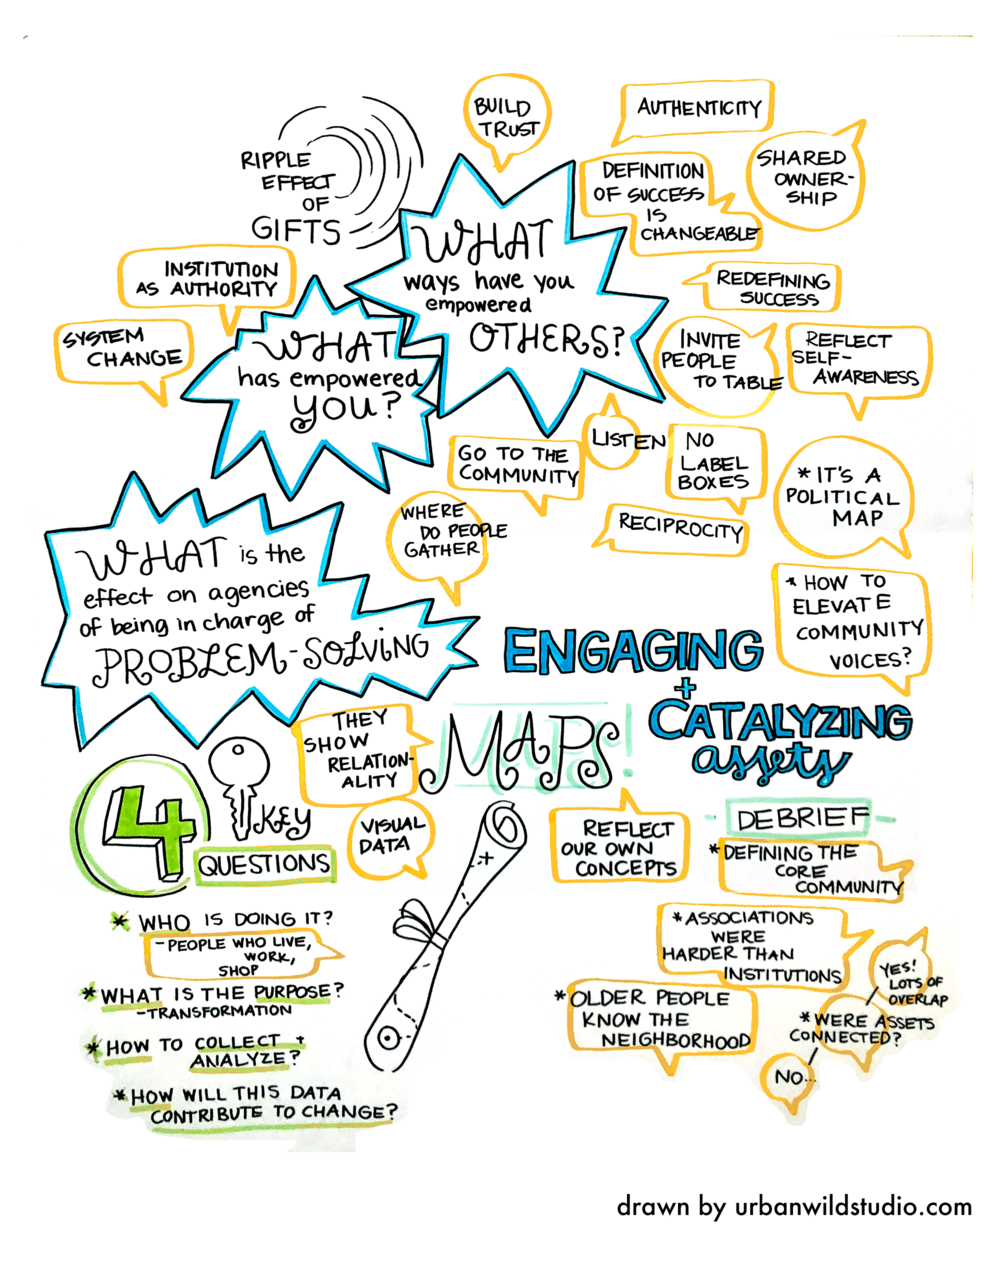 Graphic Recording Community Change 4 Urban Wild Studio